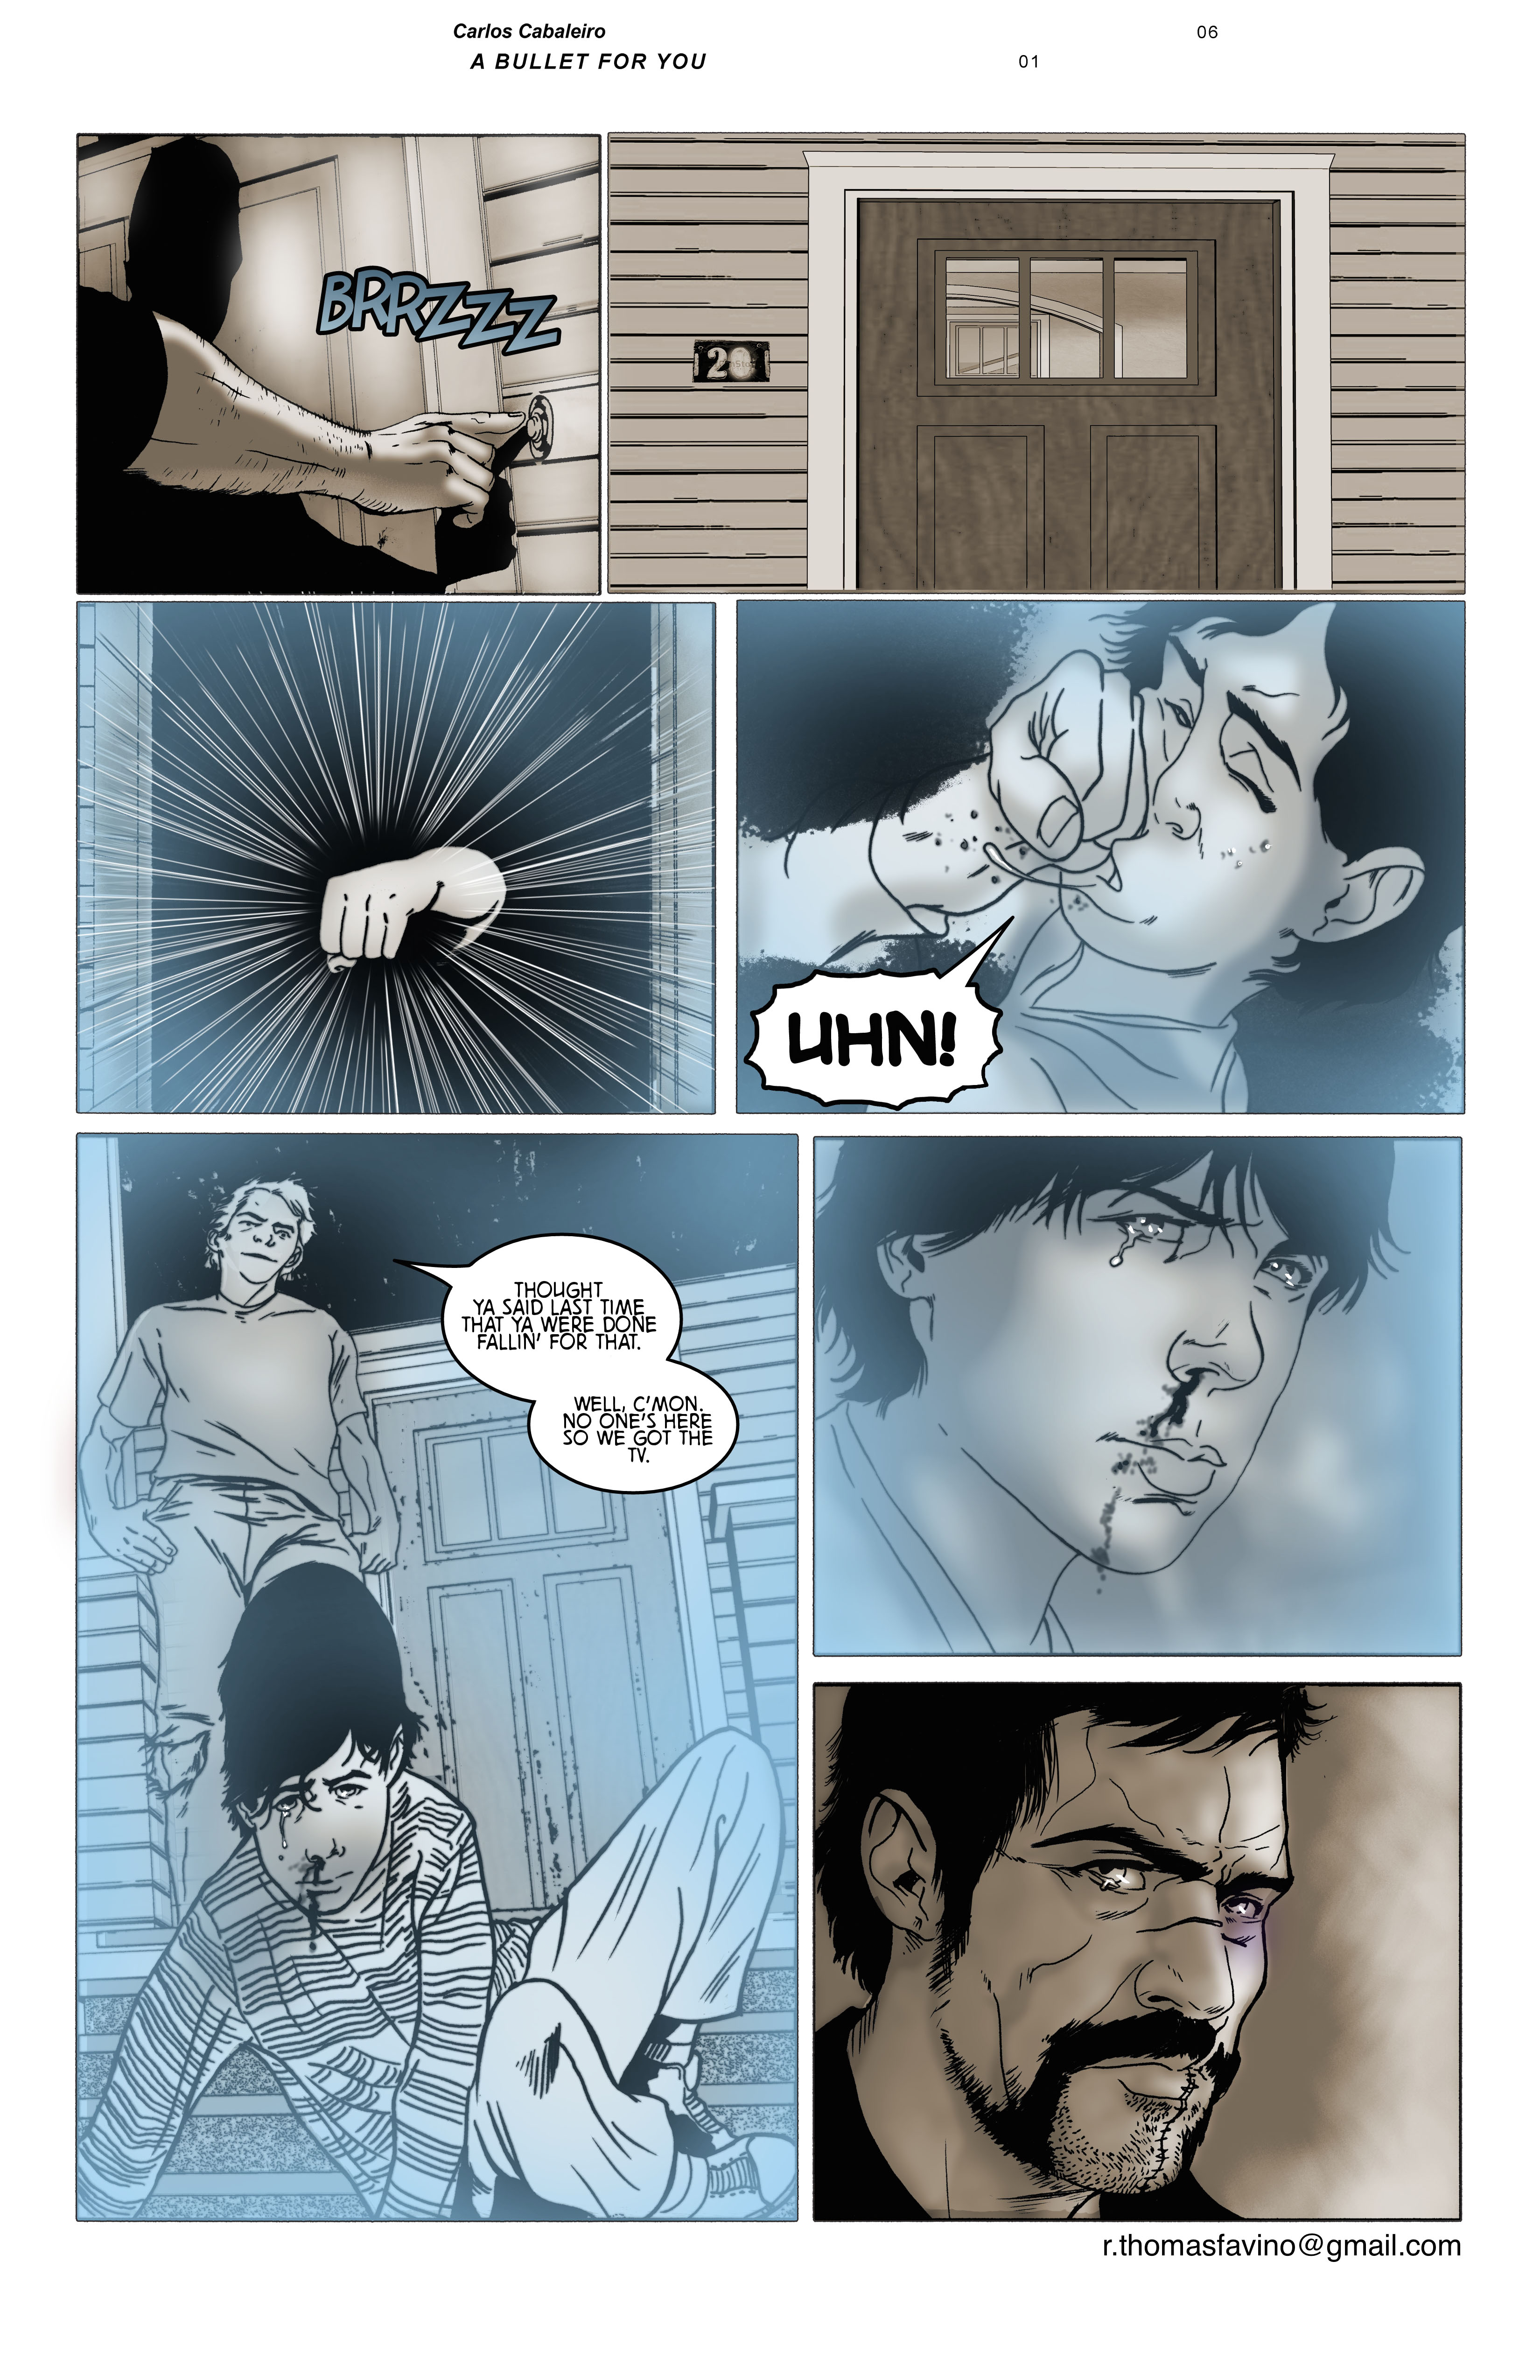 A Bullet for You #1 Page 6